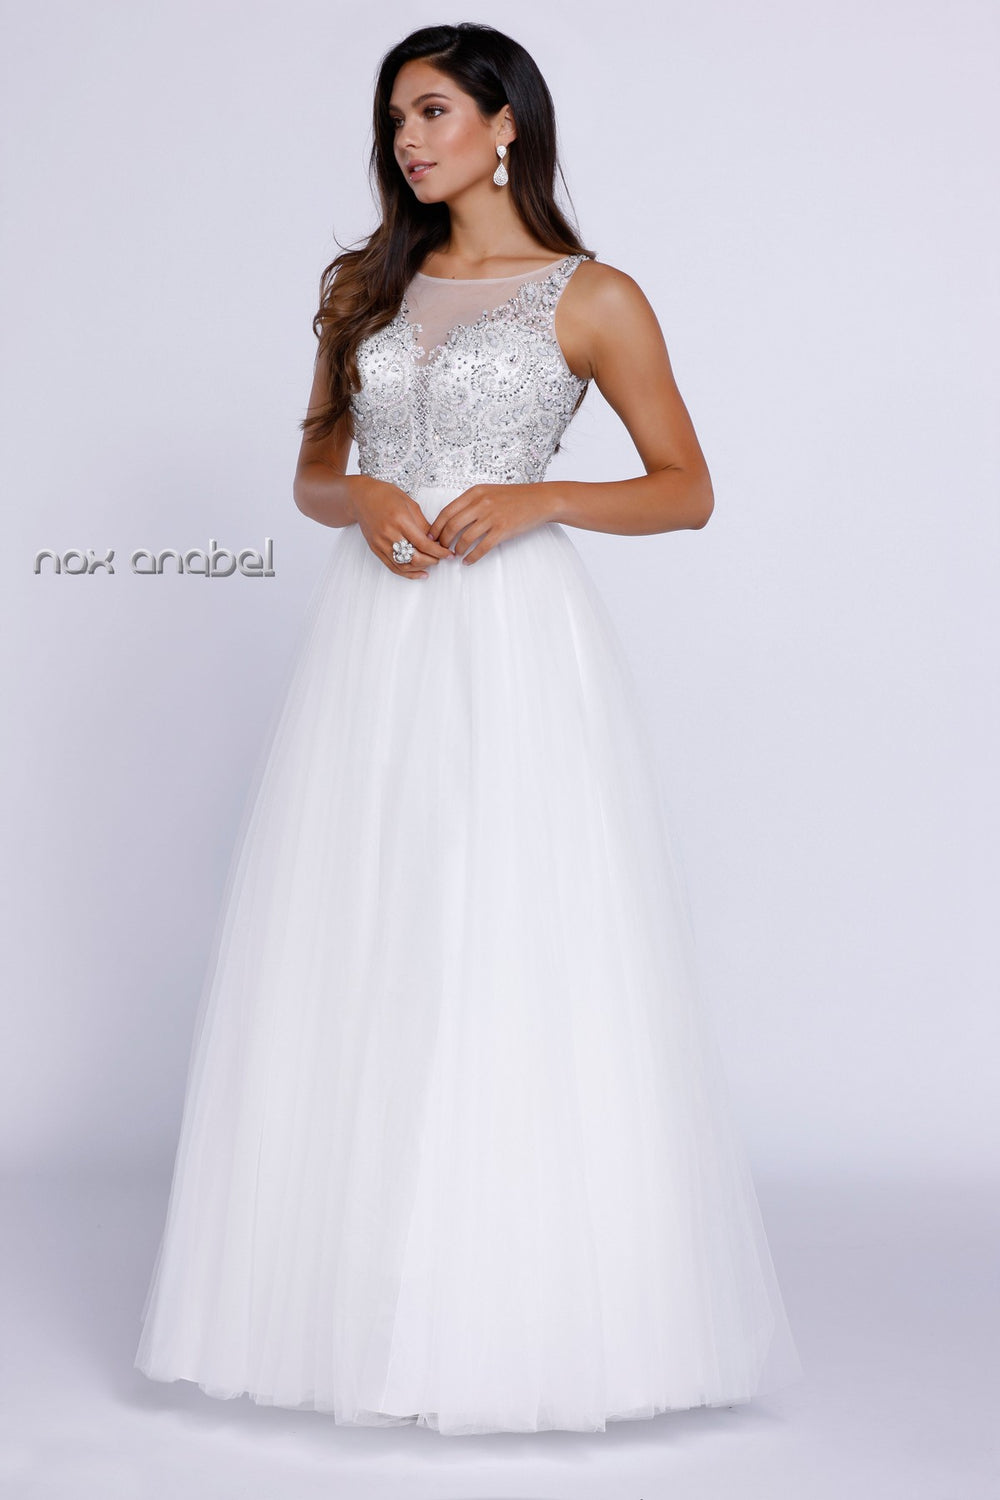 BEADED ILLUSION NECKLINE BALL GOWN 8248 BY NARIANNA